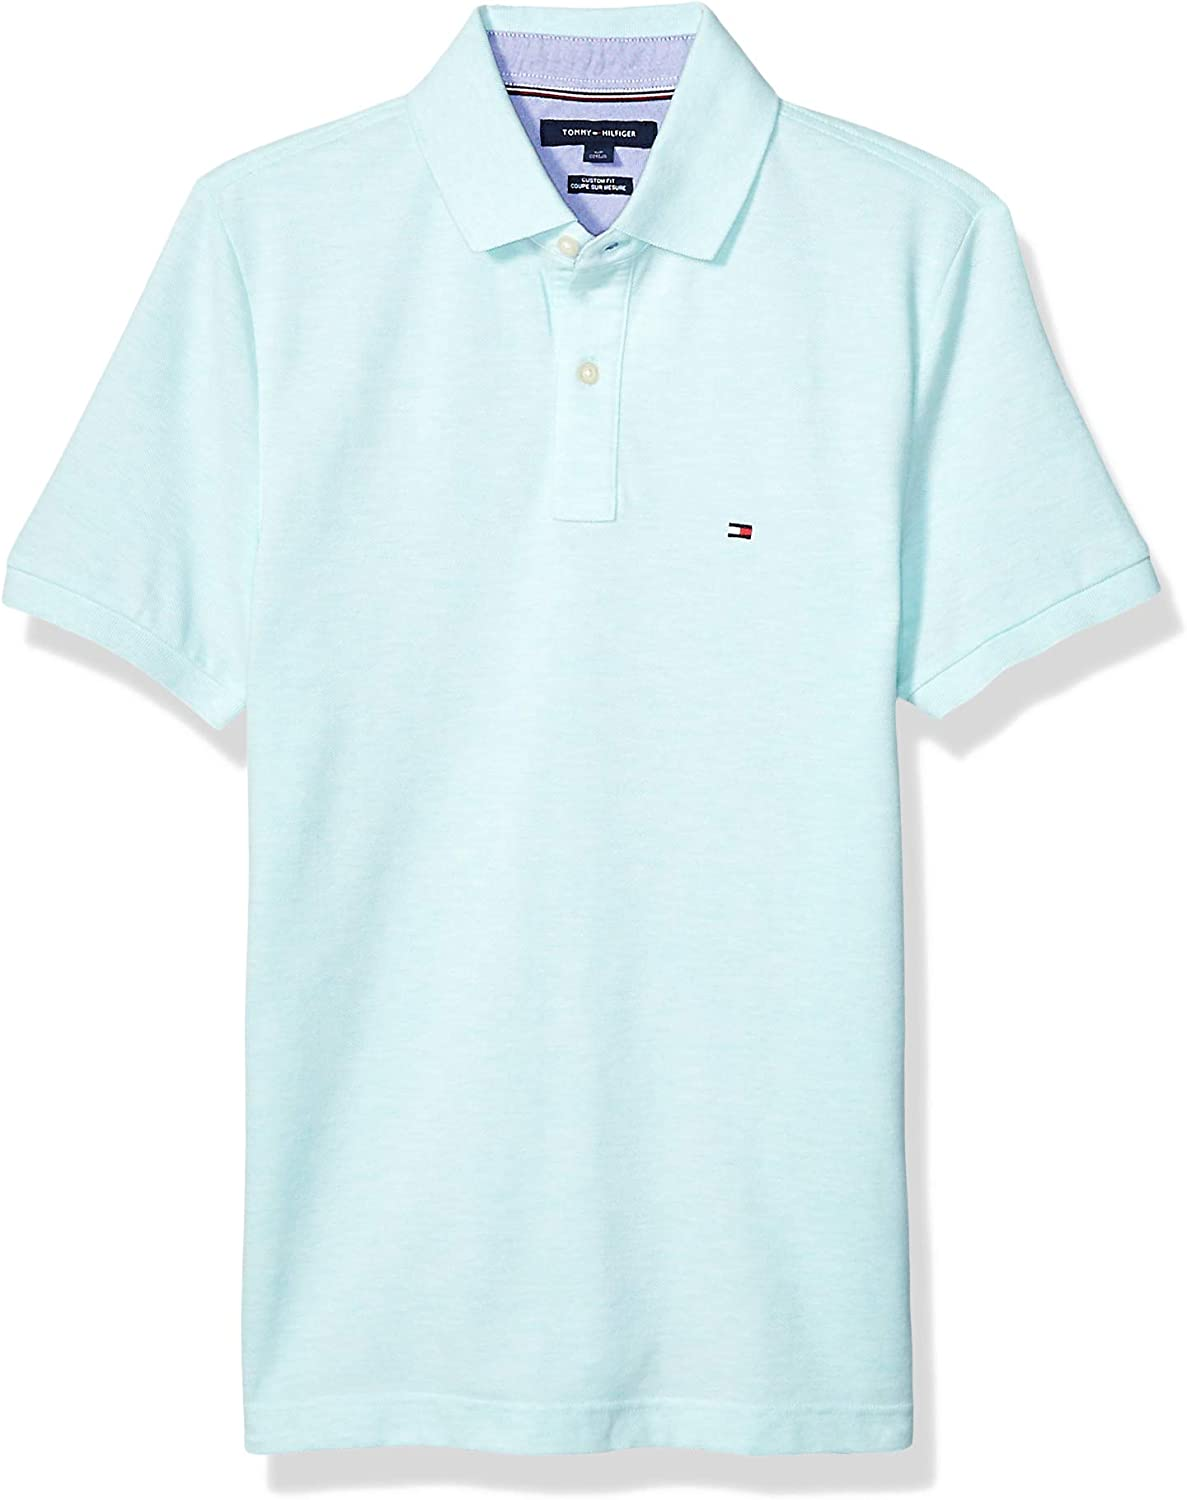 Tommy Hilfiger Men's Short Sleeve Indianapolis Mall Custom Fit Polo in Safety and trust Shirt